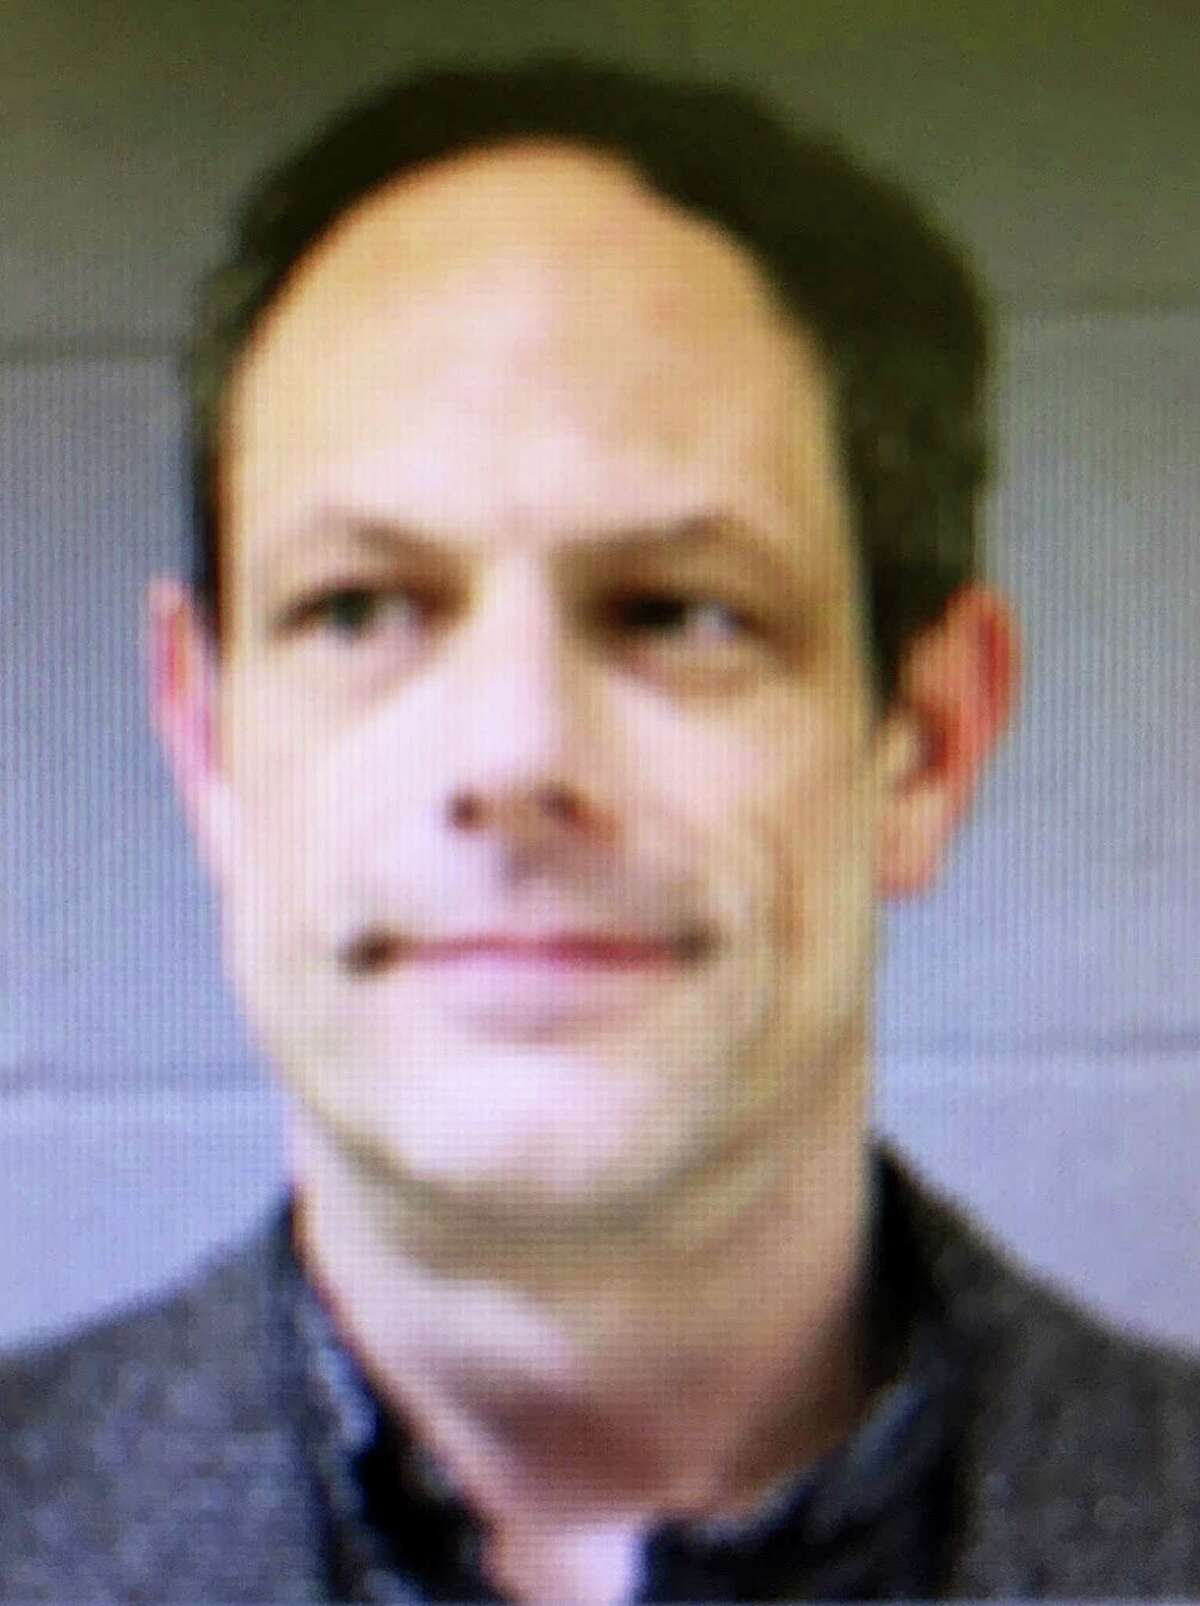 This booking photo released by the Newtown Police Department shows Jason Adams, arrested Wednesday, April 6, 2016, and charged with having a gun at the town's middle school. Adams, 46, a teacher at the school, was charged with possession of a weapon on school grounds, which is illegal in Connecticut. Police said he has a valid pistol permit.